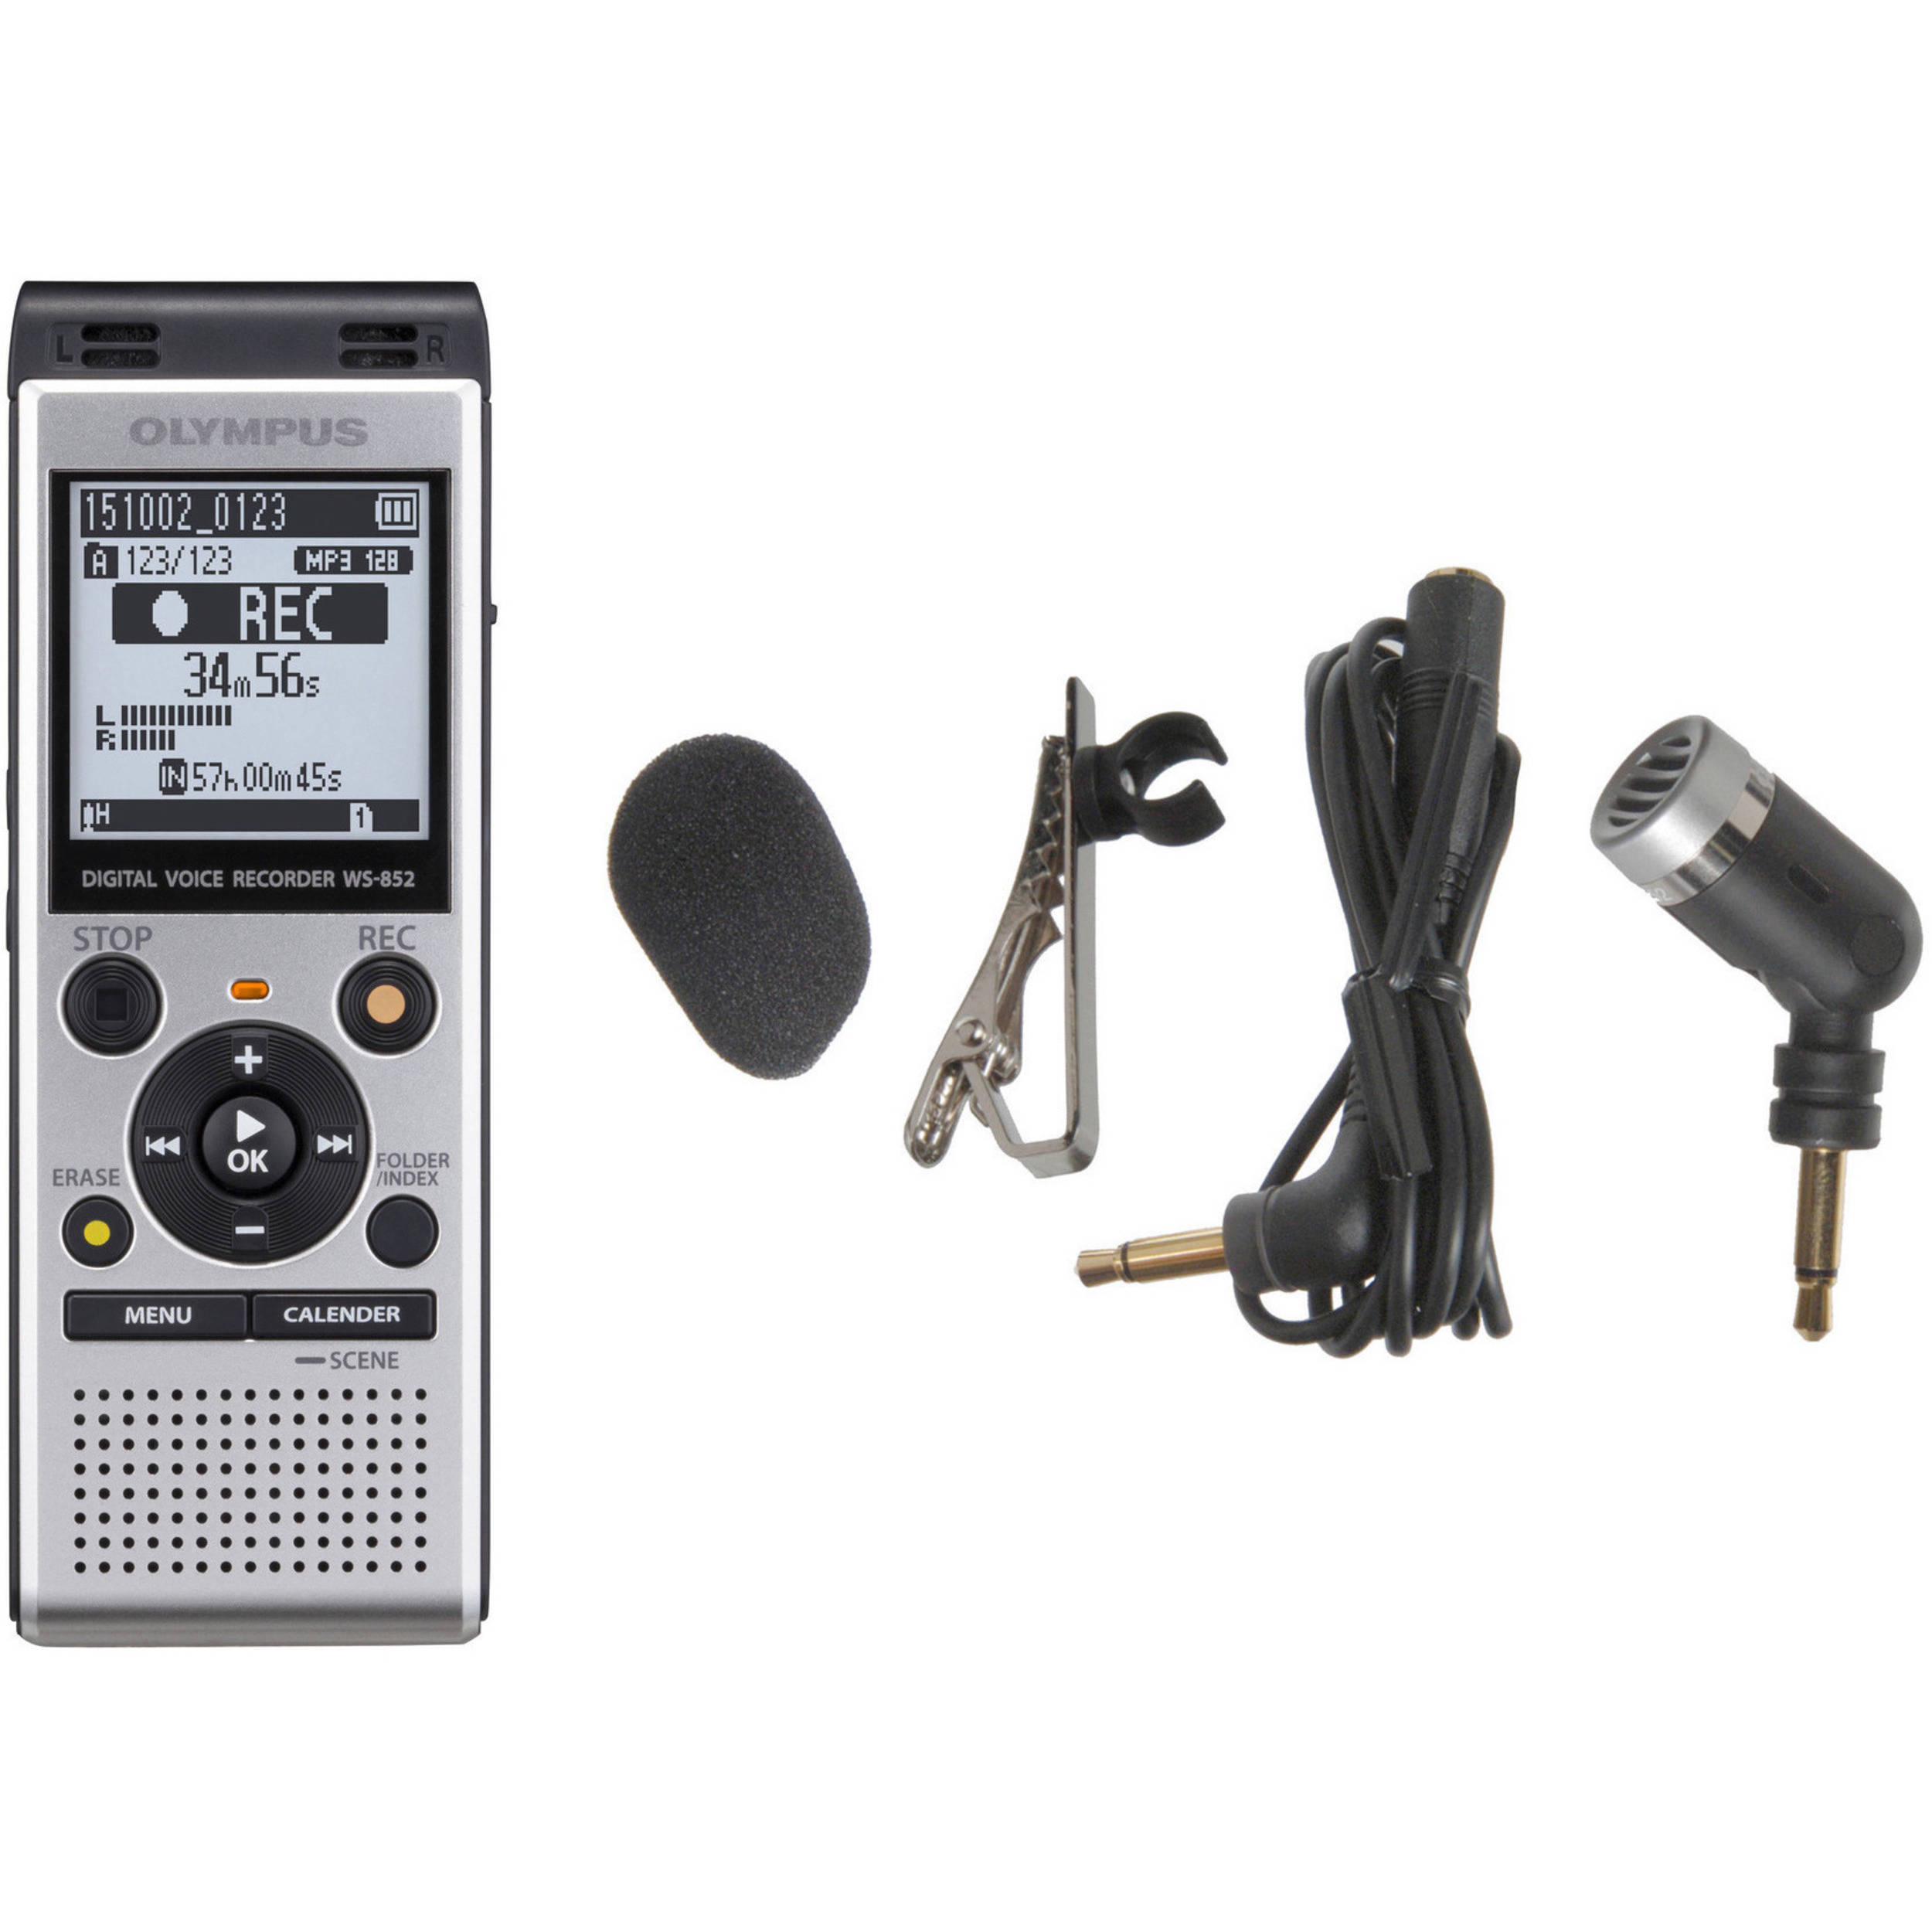 WS-852 Digital Voice Recorder and ME-52W Microphone Kit (Silver)